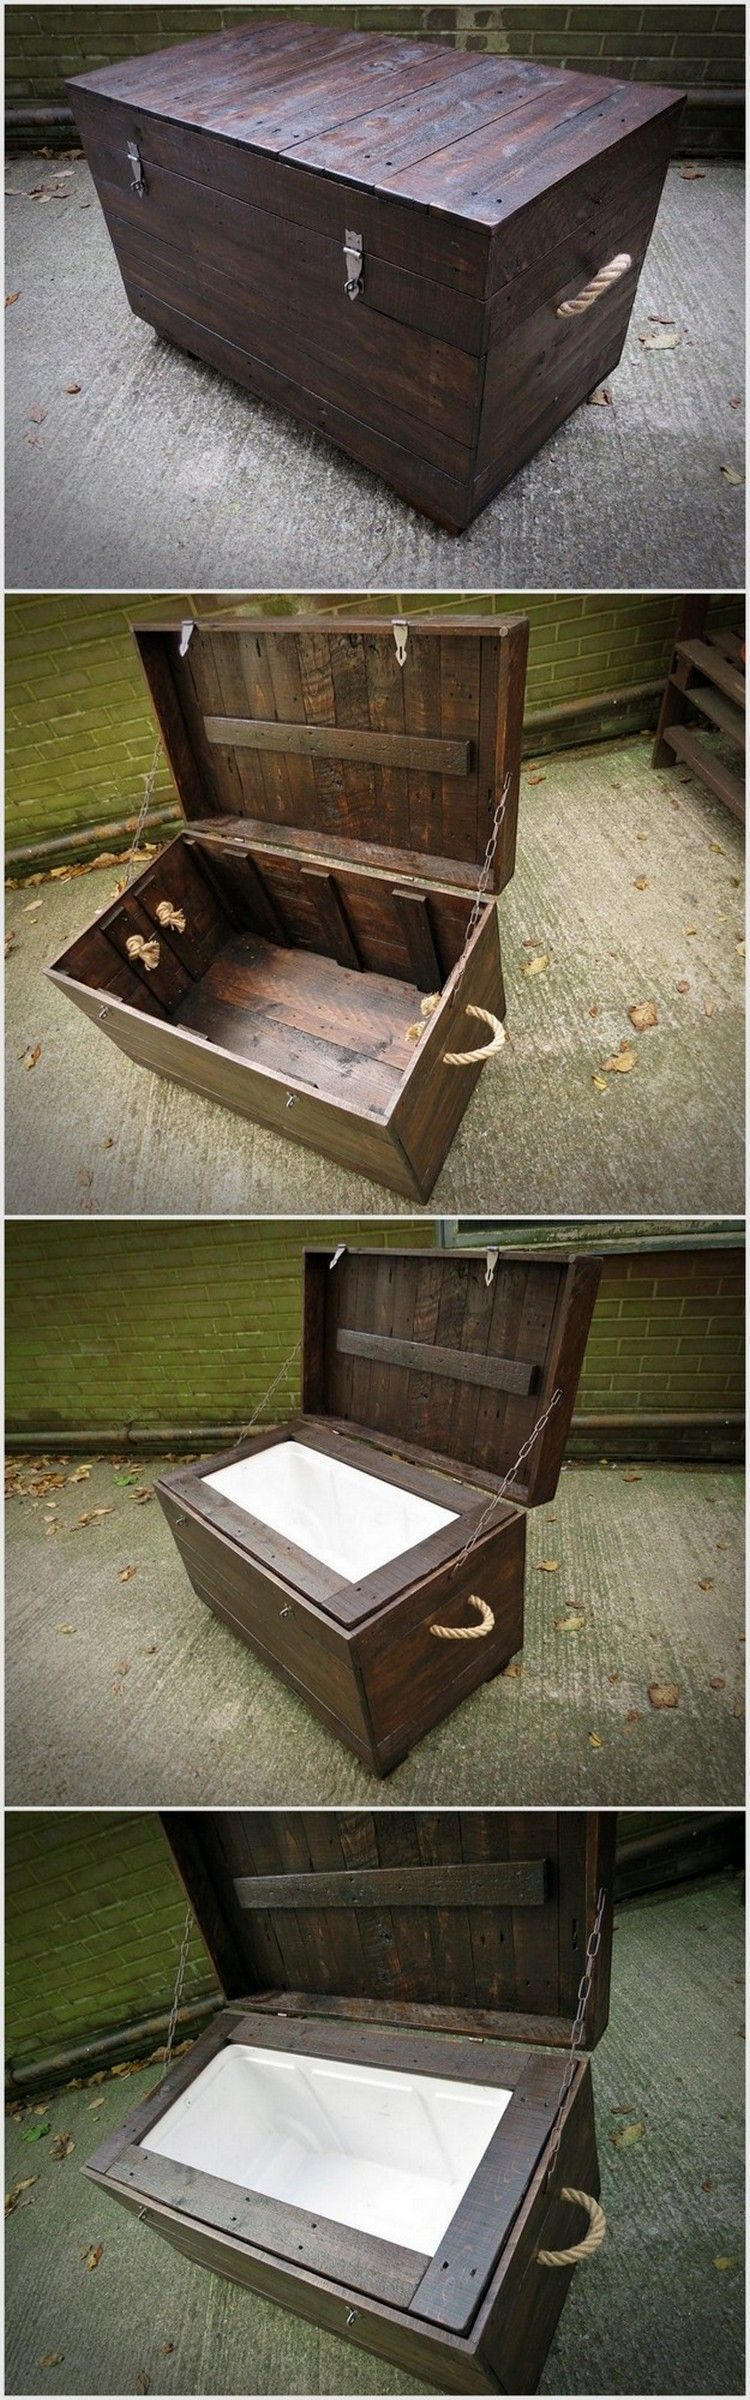 You can now create this big treasure box style from old ...